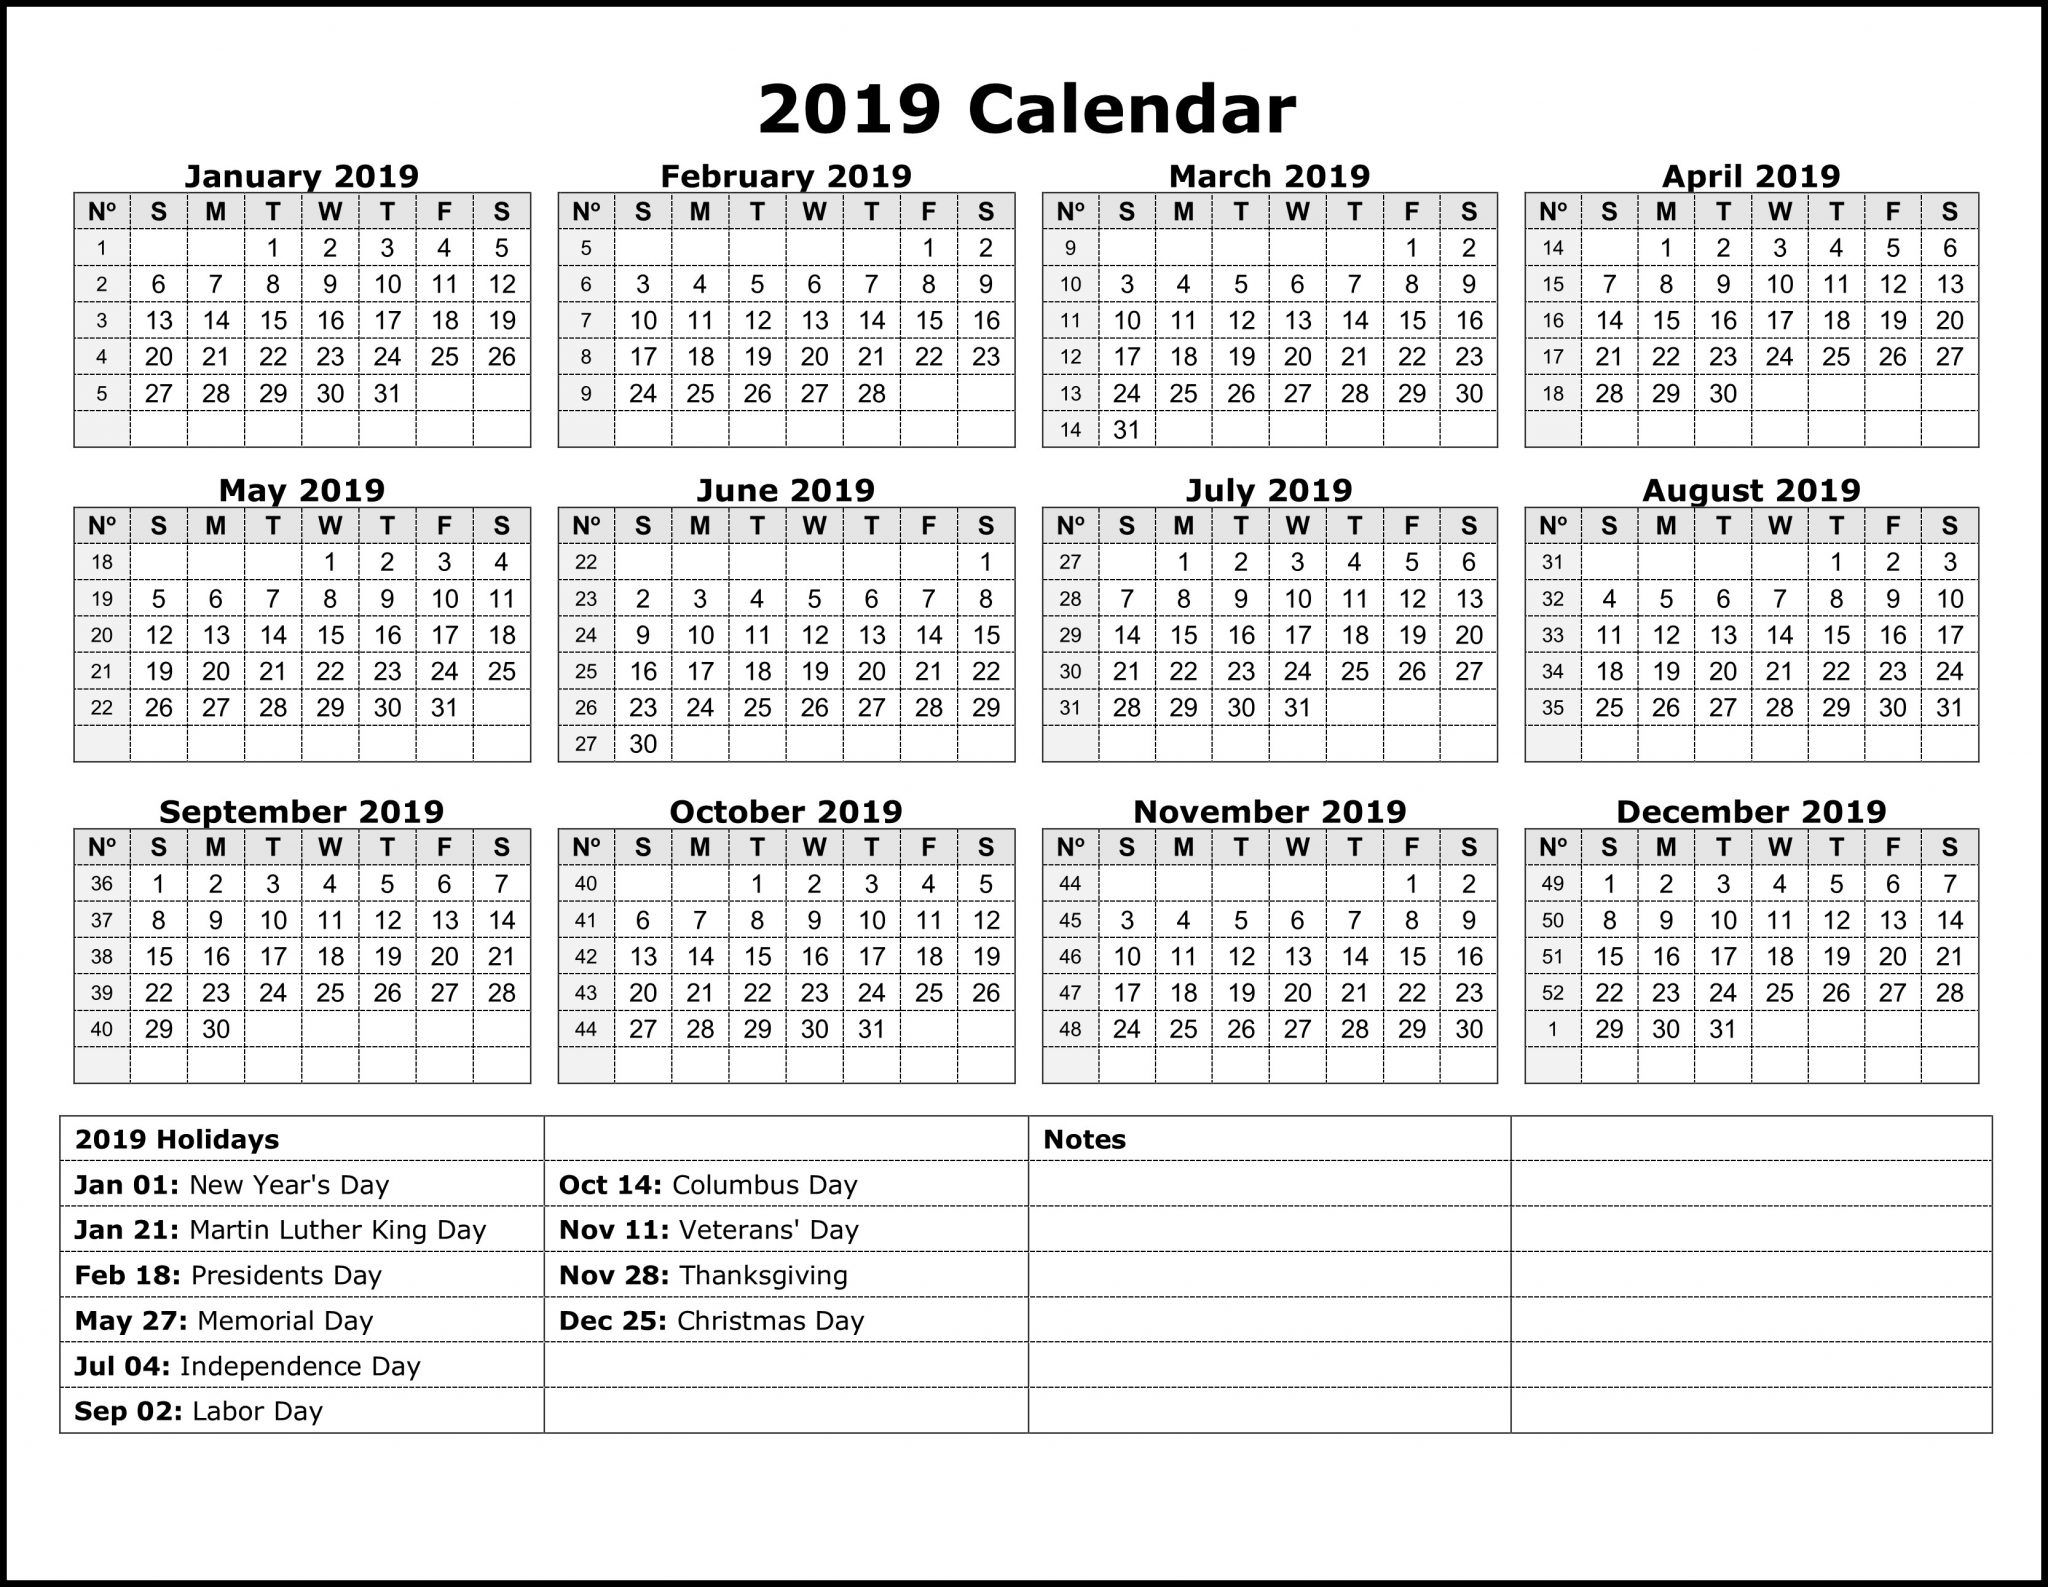 National Month Calendar 2019 National Holiday Calendar 2019 | 12 Month Calendar in One Page